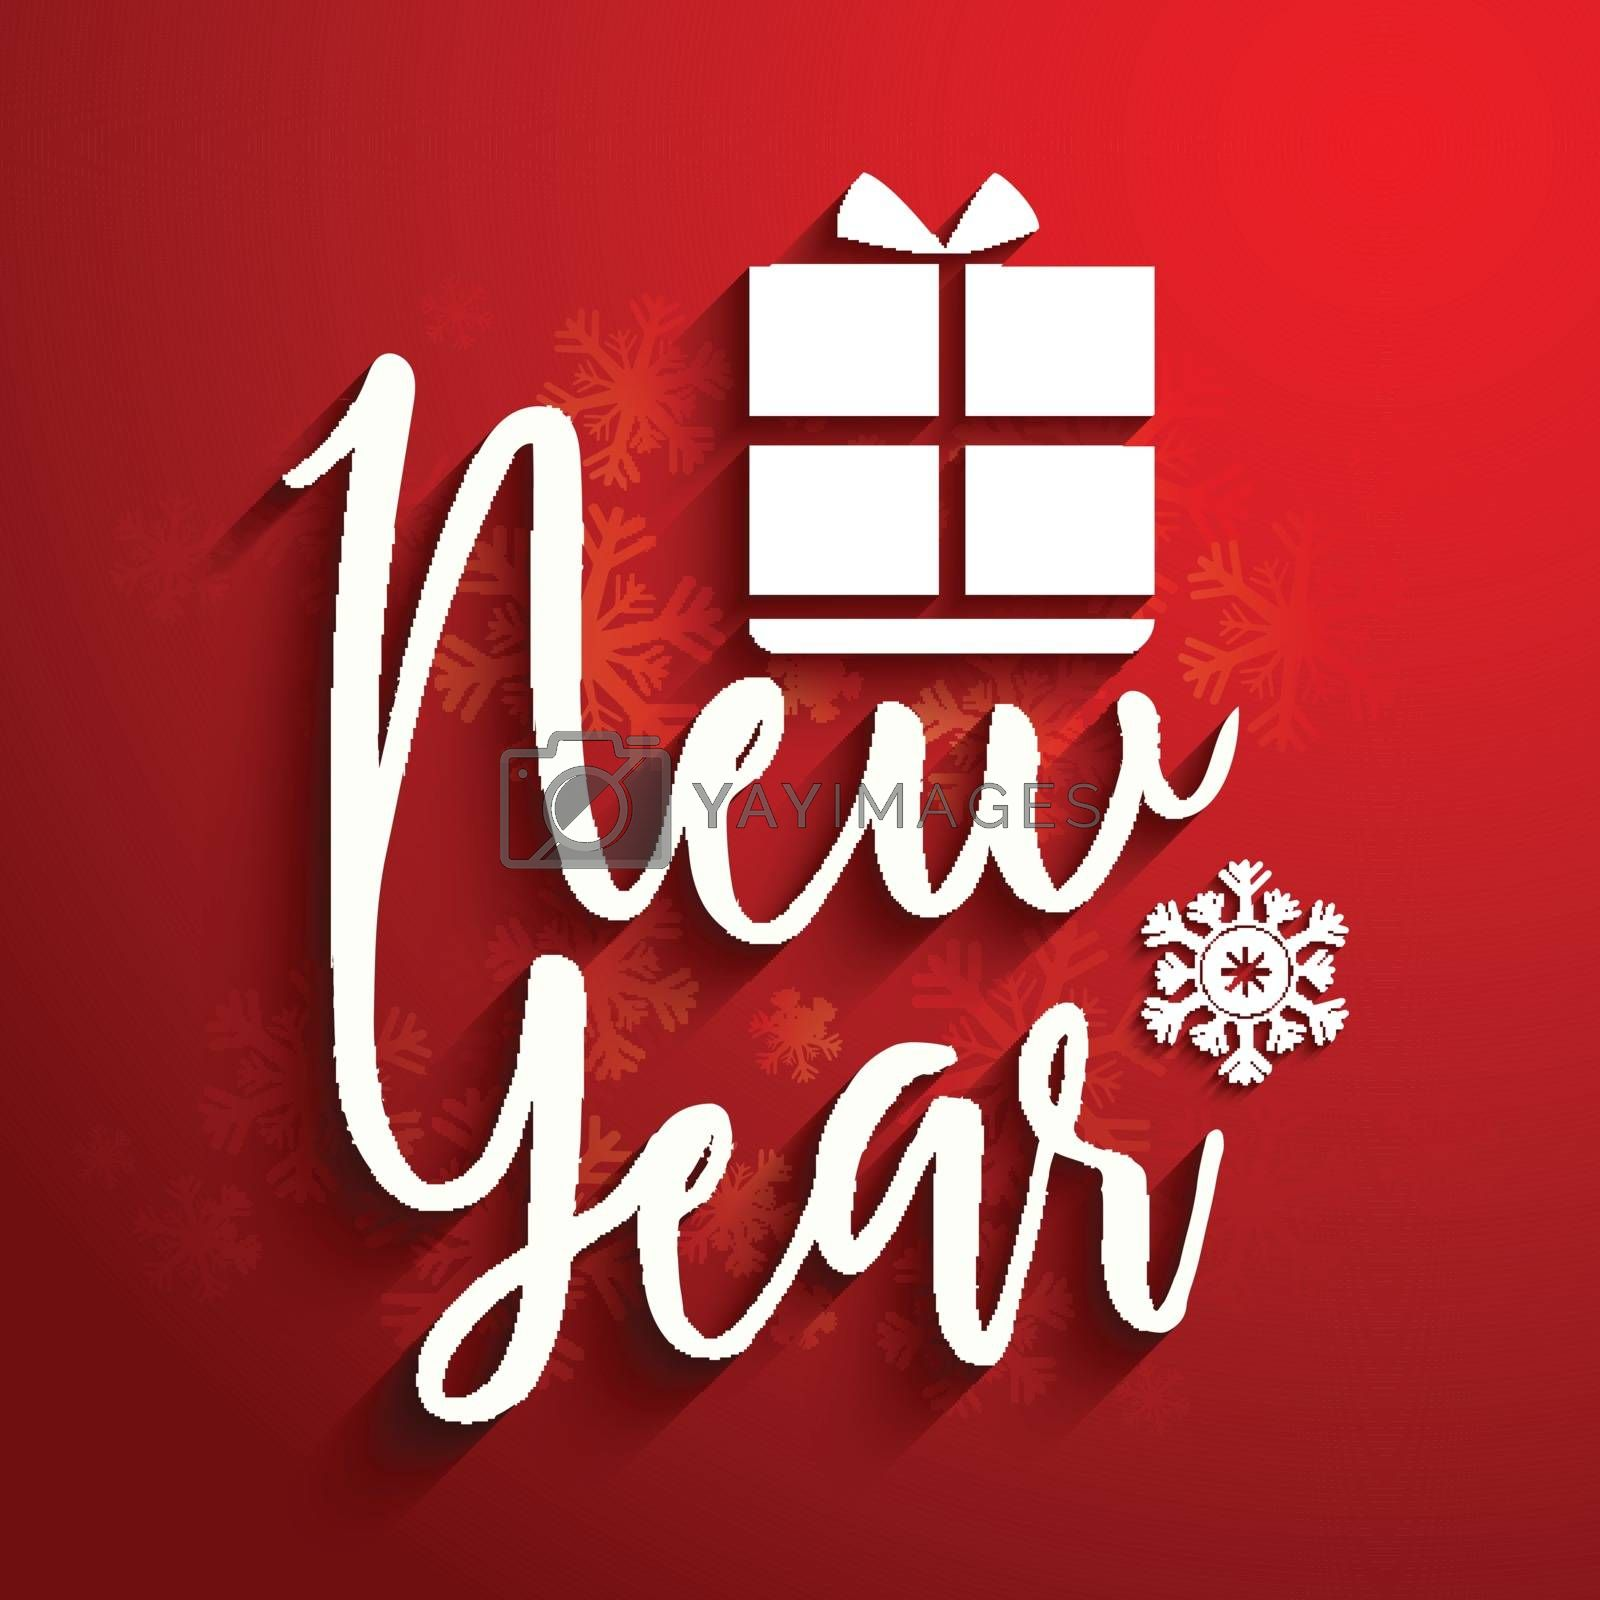 Stylish White Text New Year with Gift Box on snowflakes decorated red background.